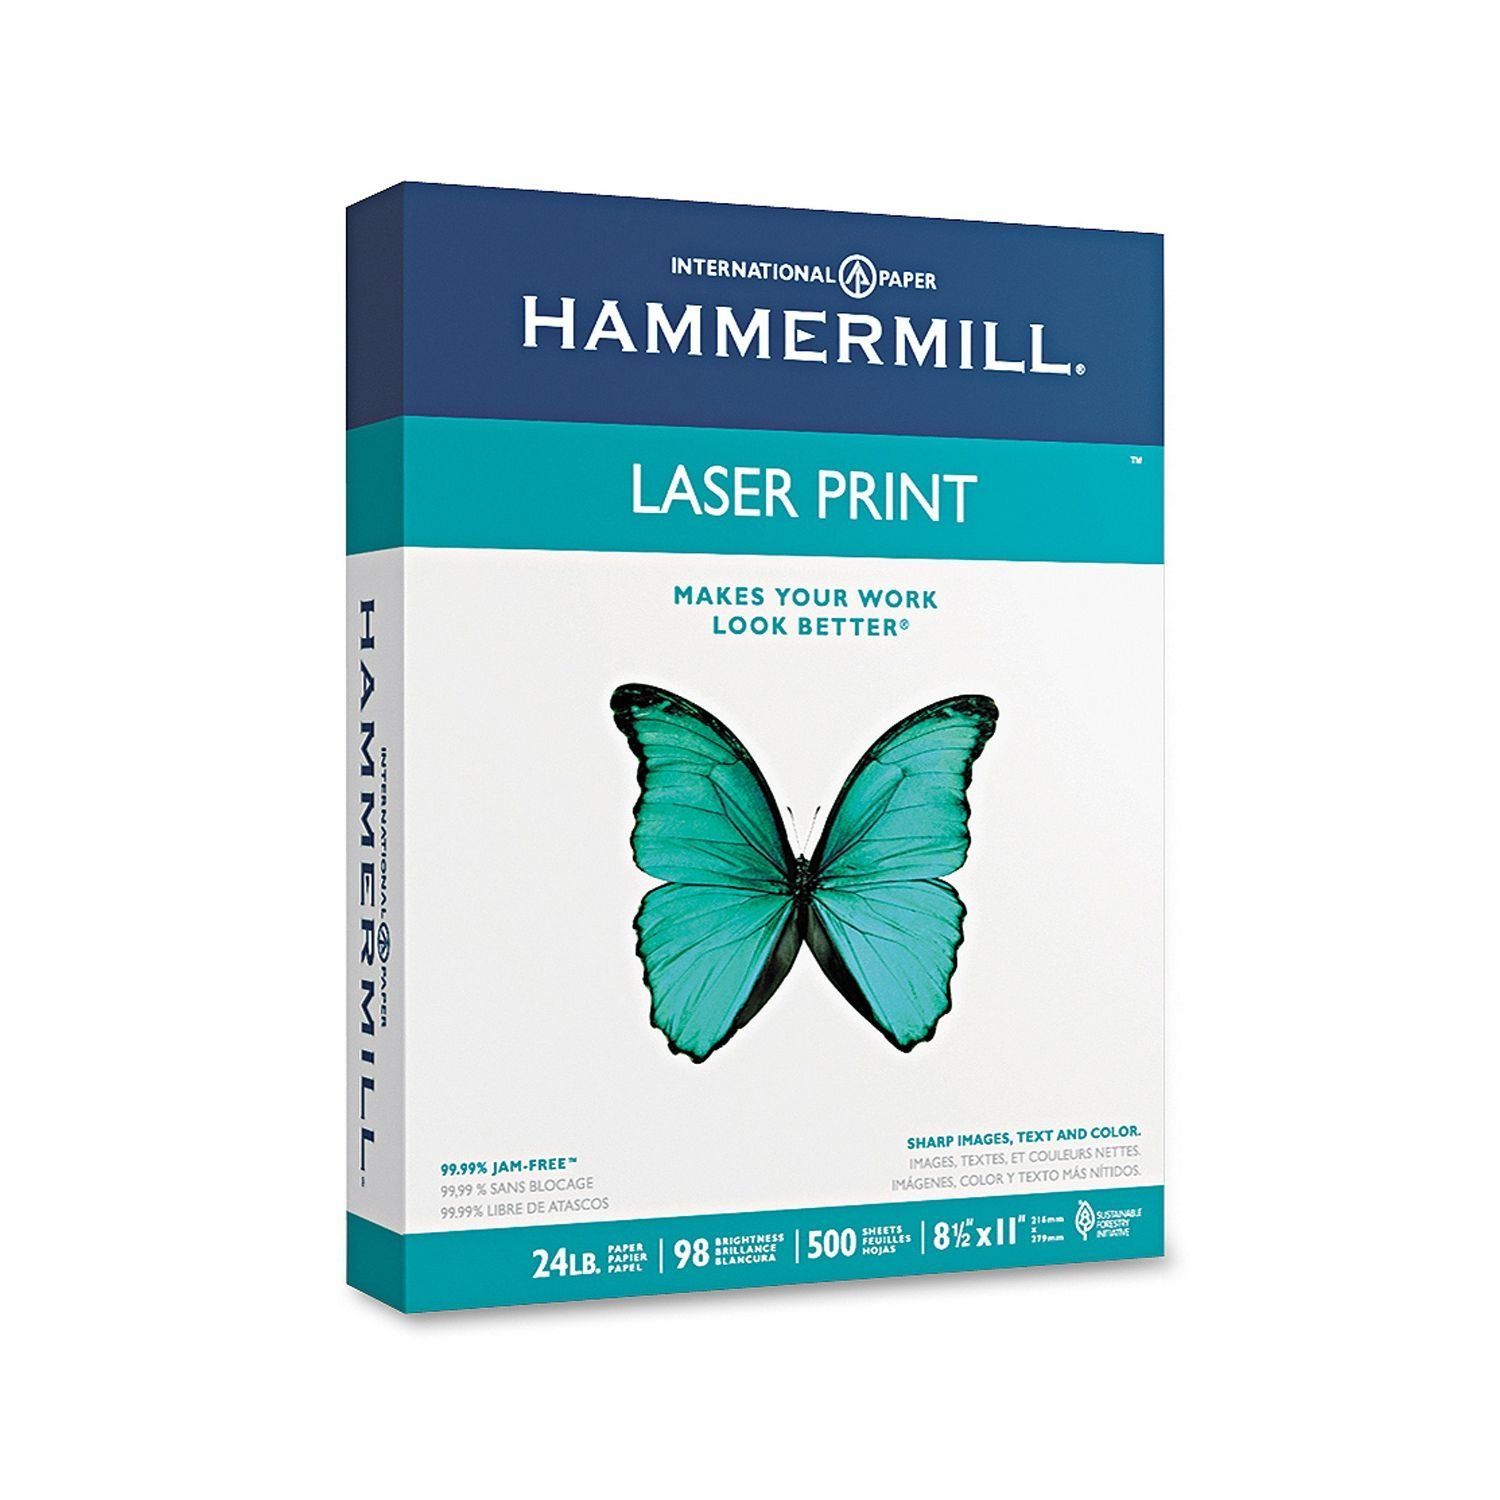 hammermill paper Company international paper is one of the world's leading producers of fiber-based packaging, pulp and paper, with 52,000 employees operating in more than 24 countries.